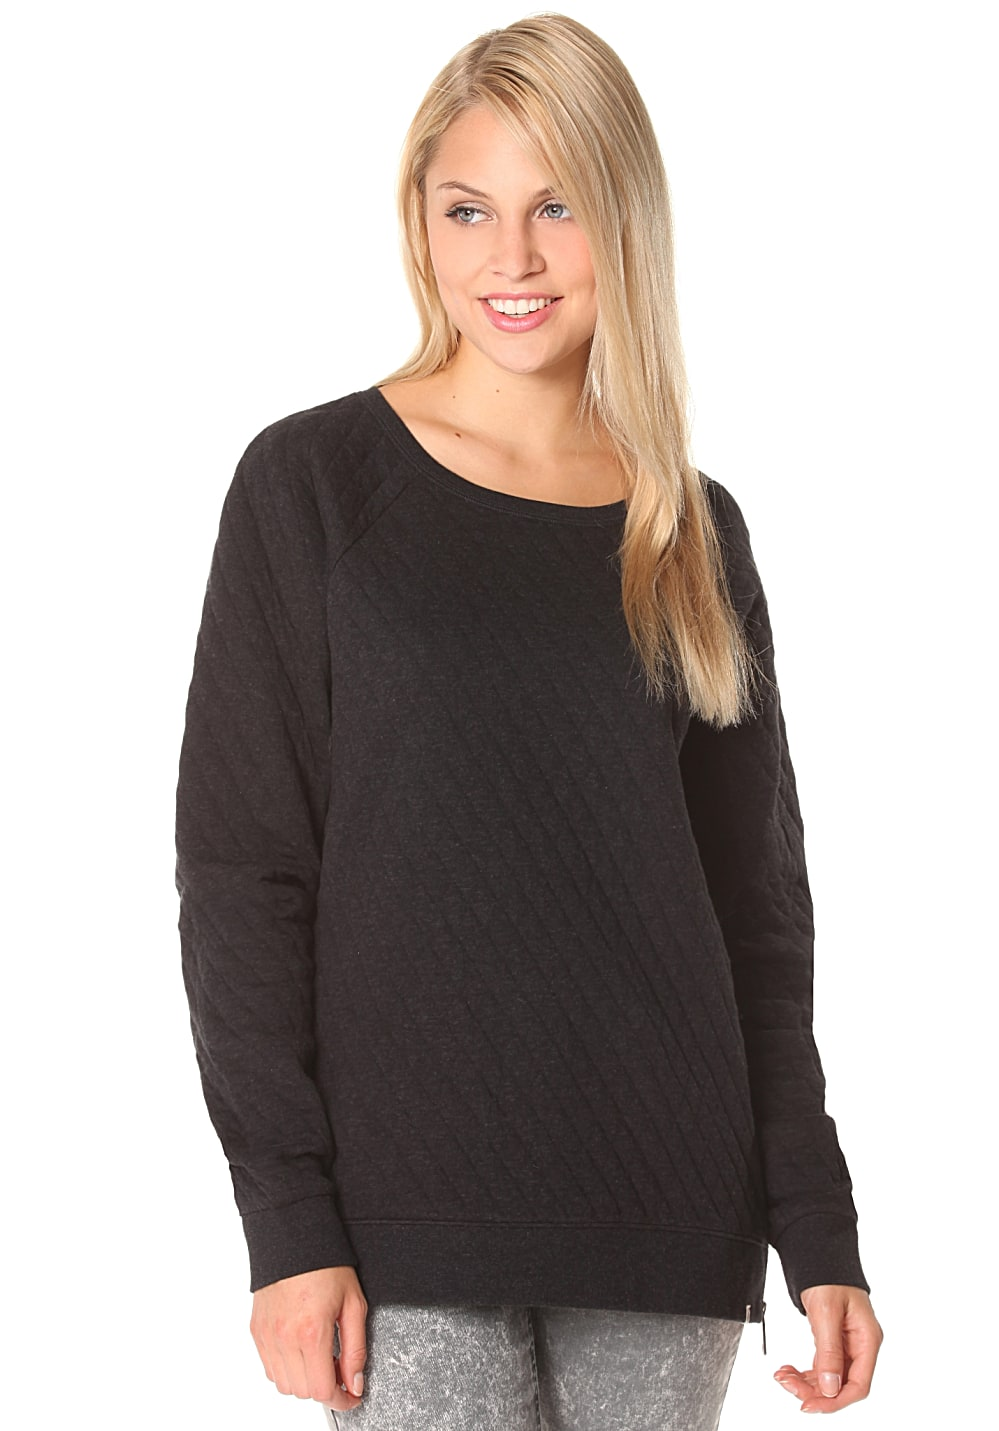 volcom earley sweatshirt f r damen schwarz planet sports. Black Bedroom Furniture Sets. Home Design Ideas